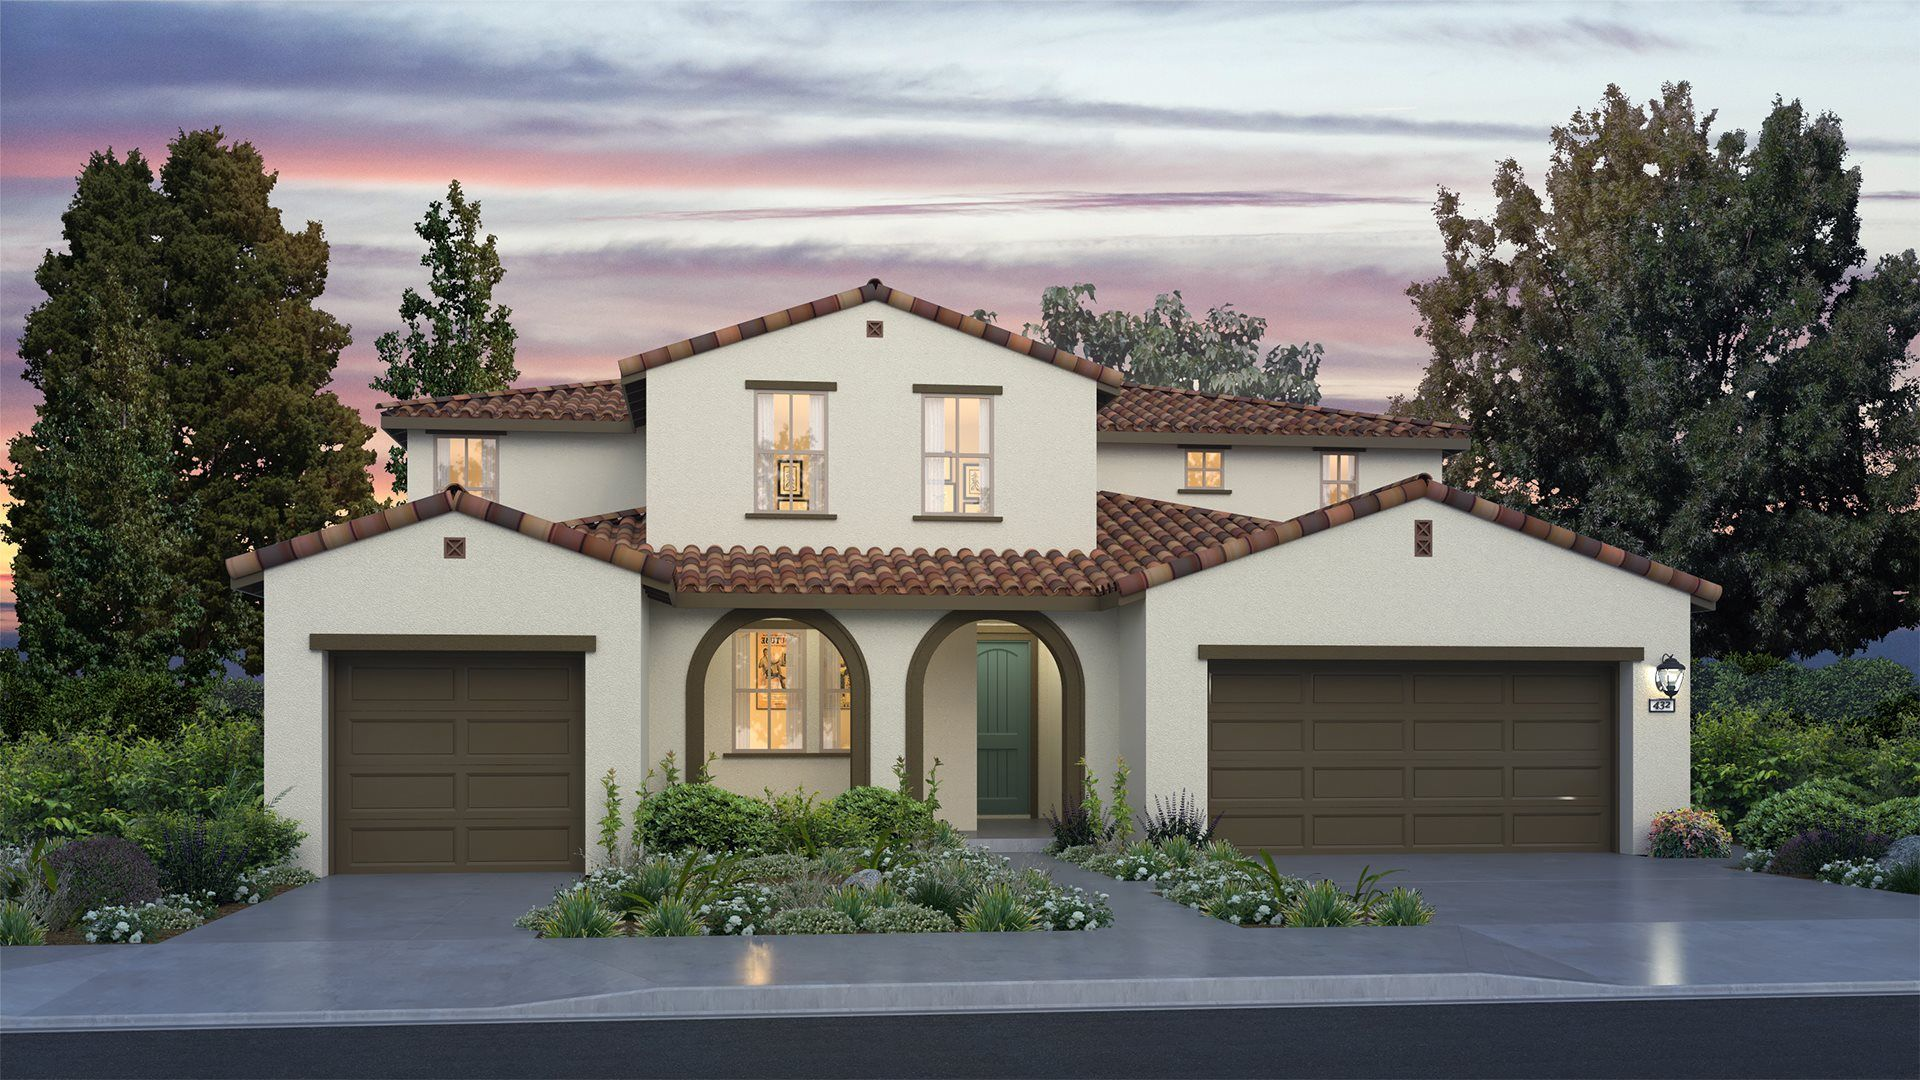 Exploration at Shadow Rock - 4122 Next Gen by Lennar A Exterior